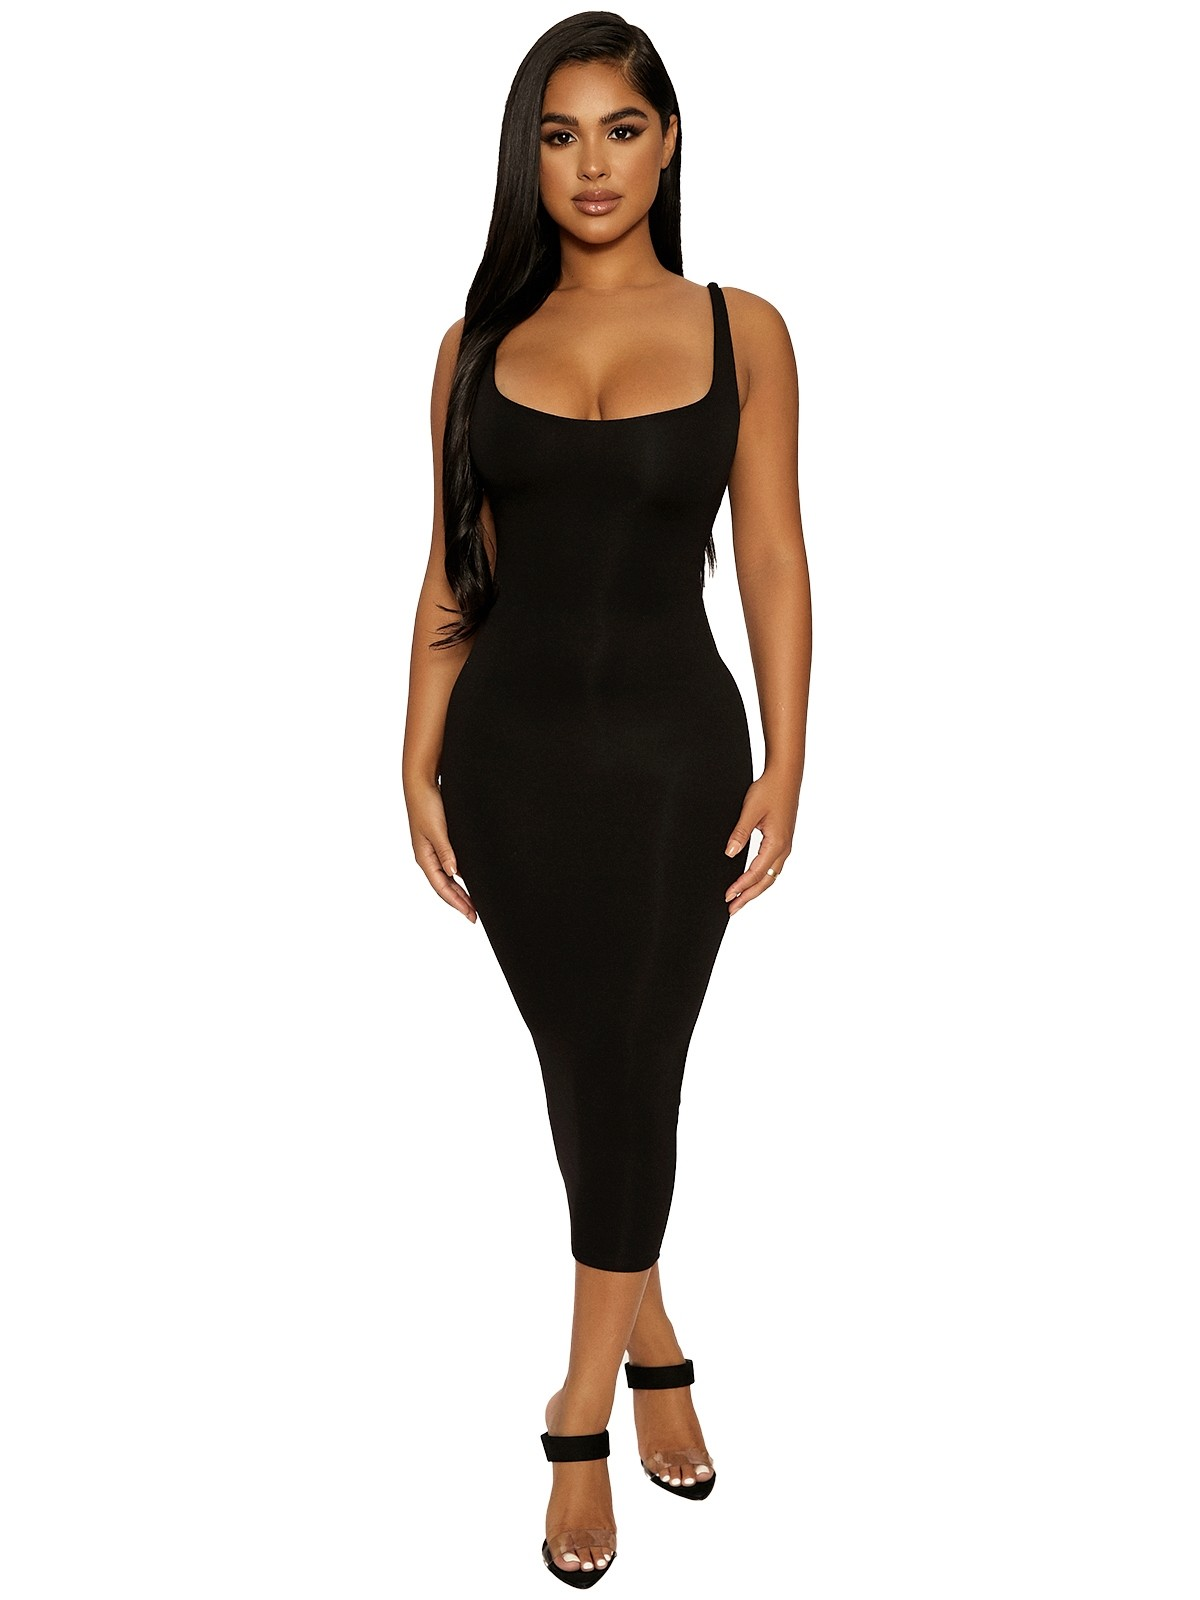 The NW Hourglass Midi Dress by Naked Wardrobe, available on nakedwardrobe.com for $46 Kylie Jenner Dress SIMILAR PRODUCT